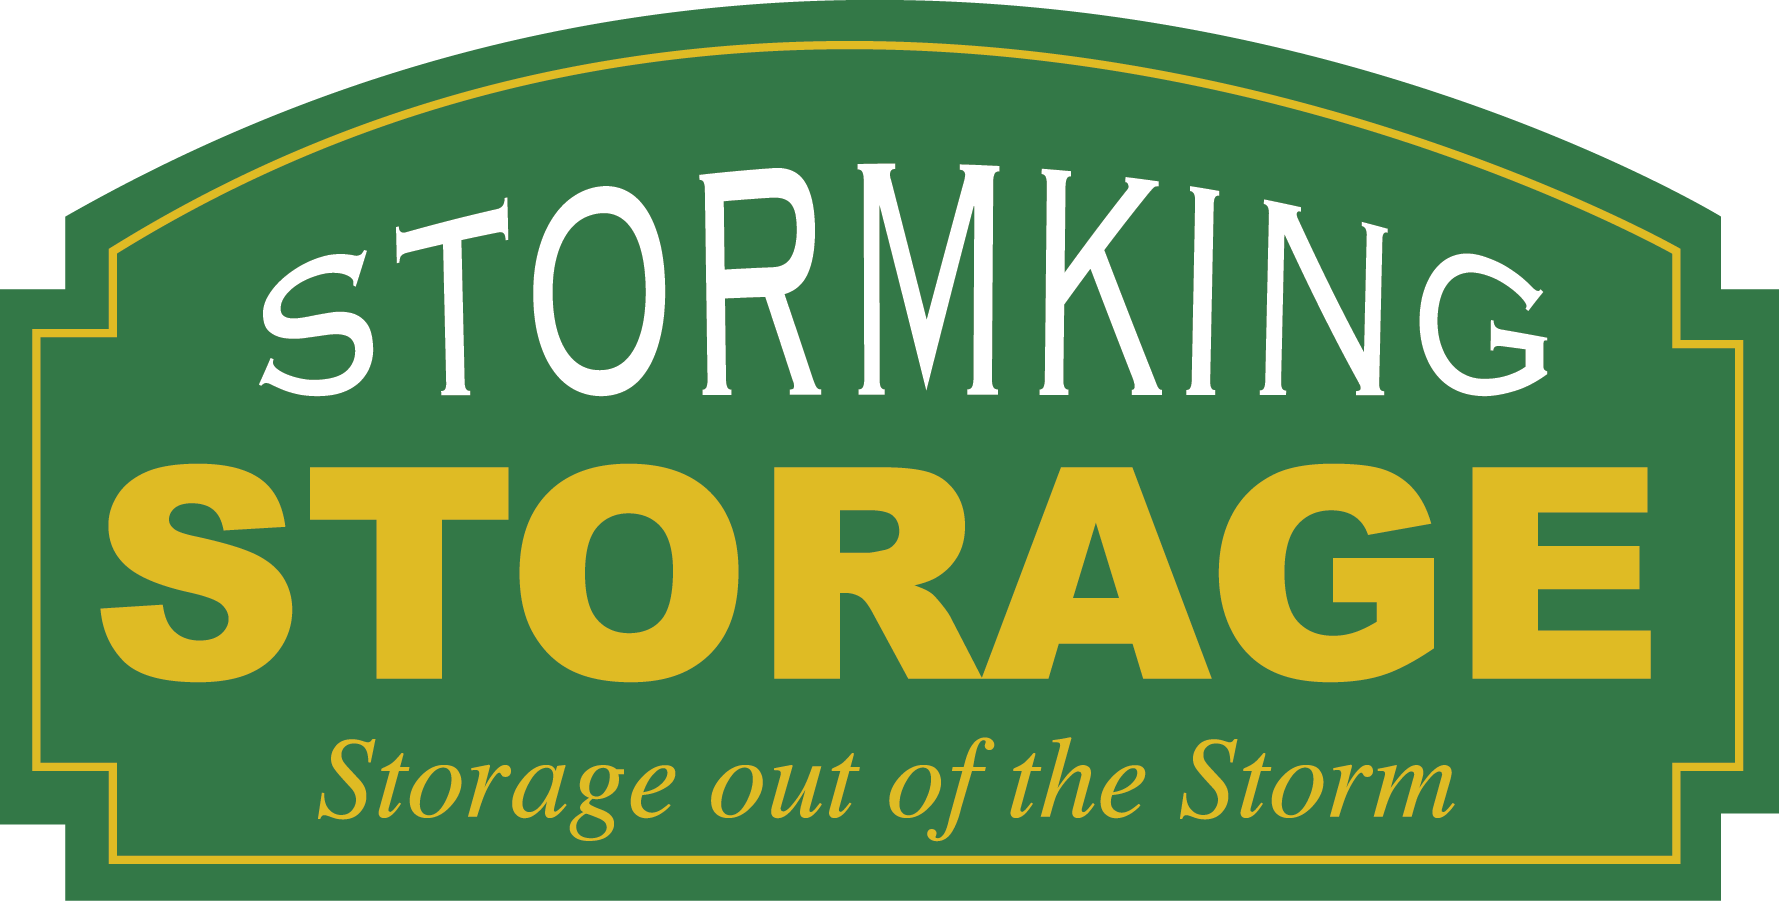 StormKing Storage Units, RV Storage, Boat Storage